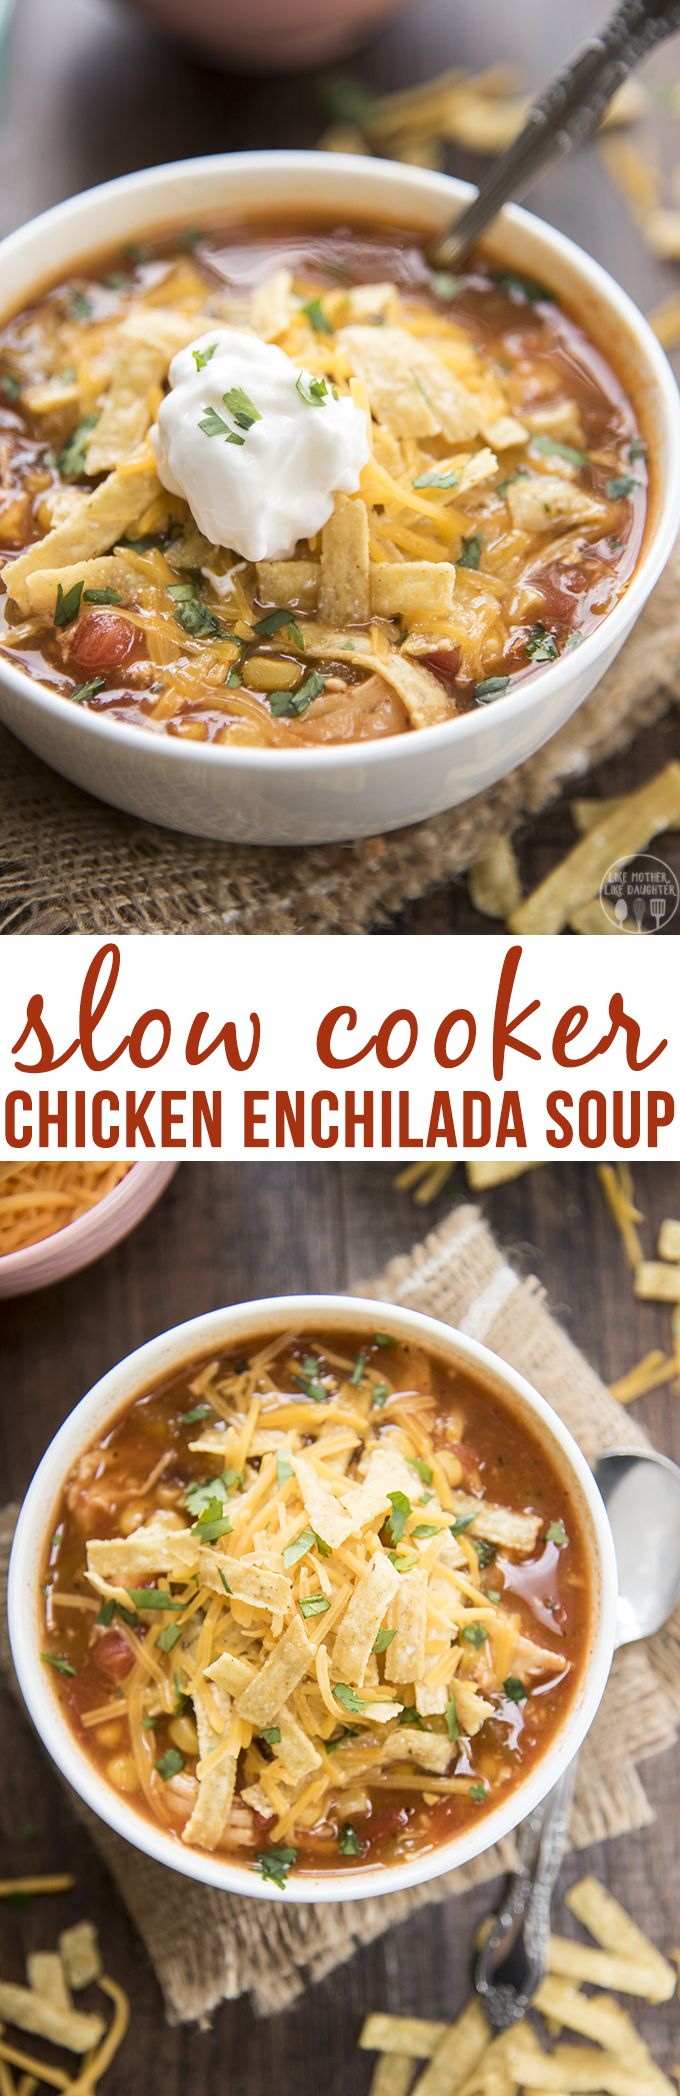 Slow Cooker Chicken Enchilada Soup This Soup Is Packed Full Of Flavor With